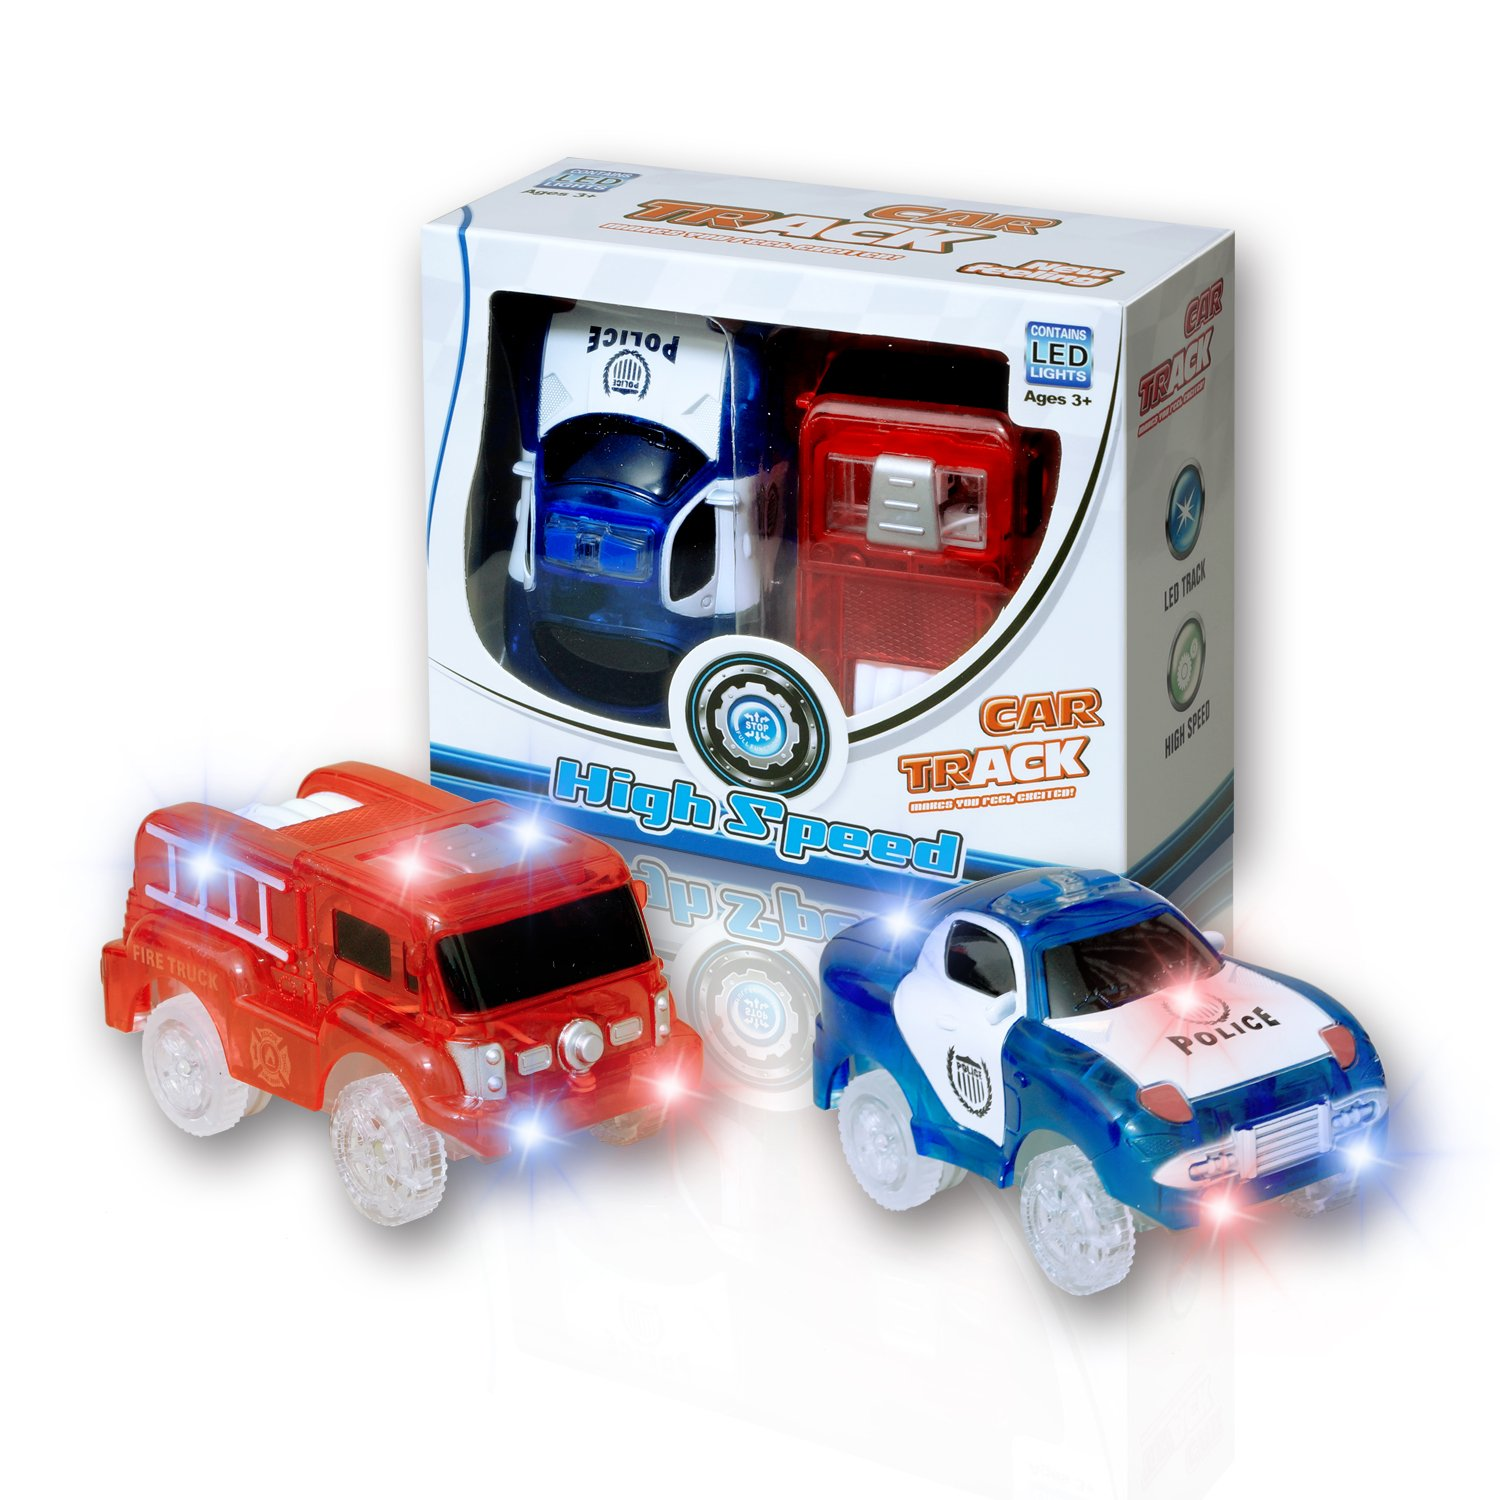 MIGE Light Up Toy Police Car and Fire Engine Car with Flashing Light Glow in the Dark City Action Toys Rush and Rescue Police and Fireman Pack of 2(Red+Blue) .